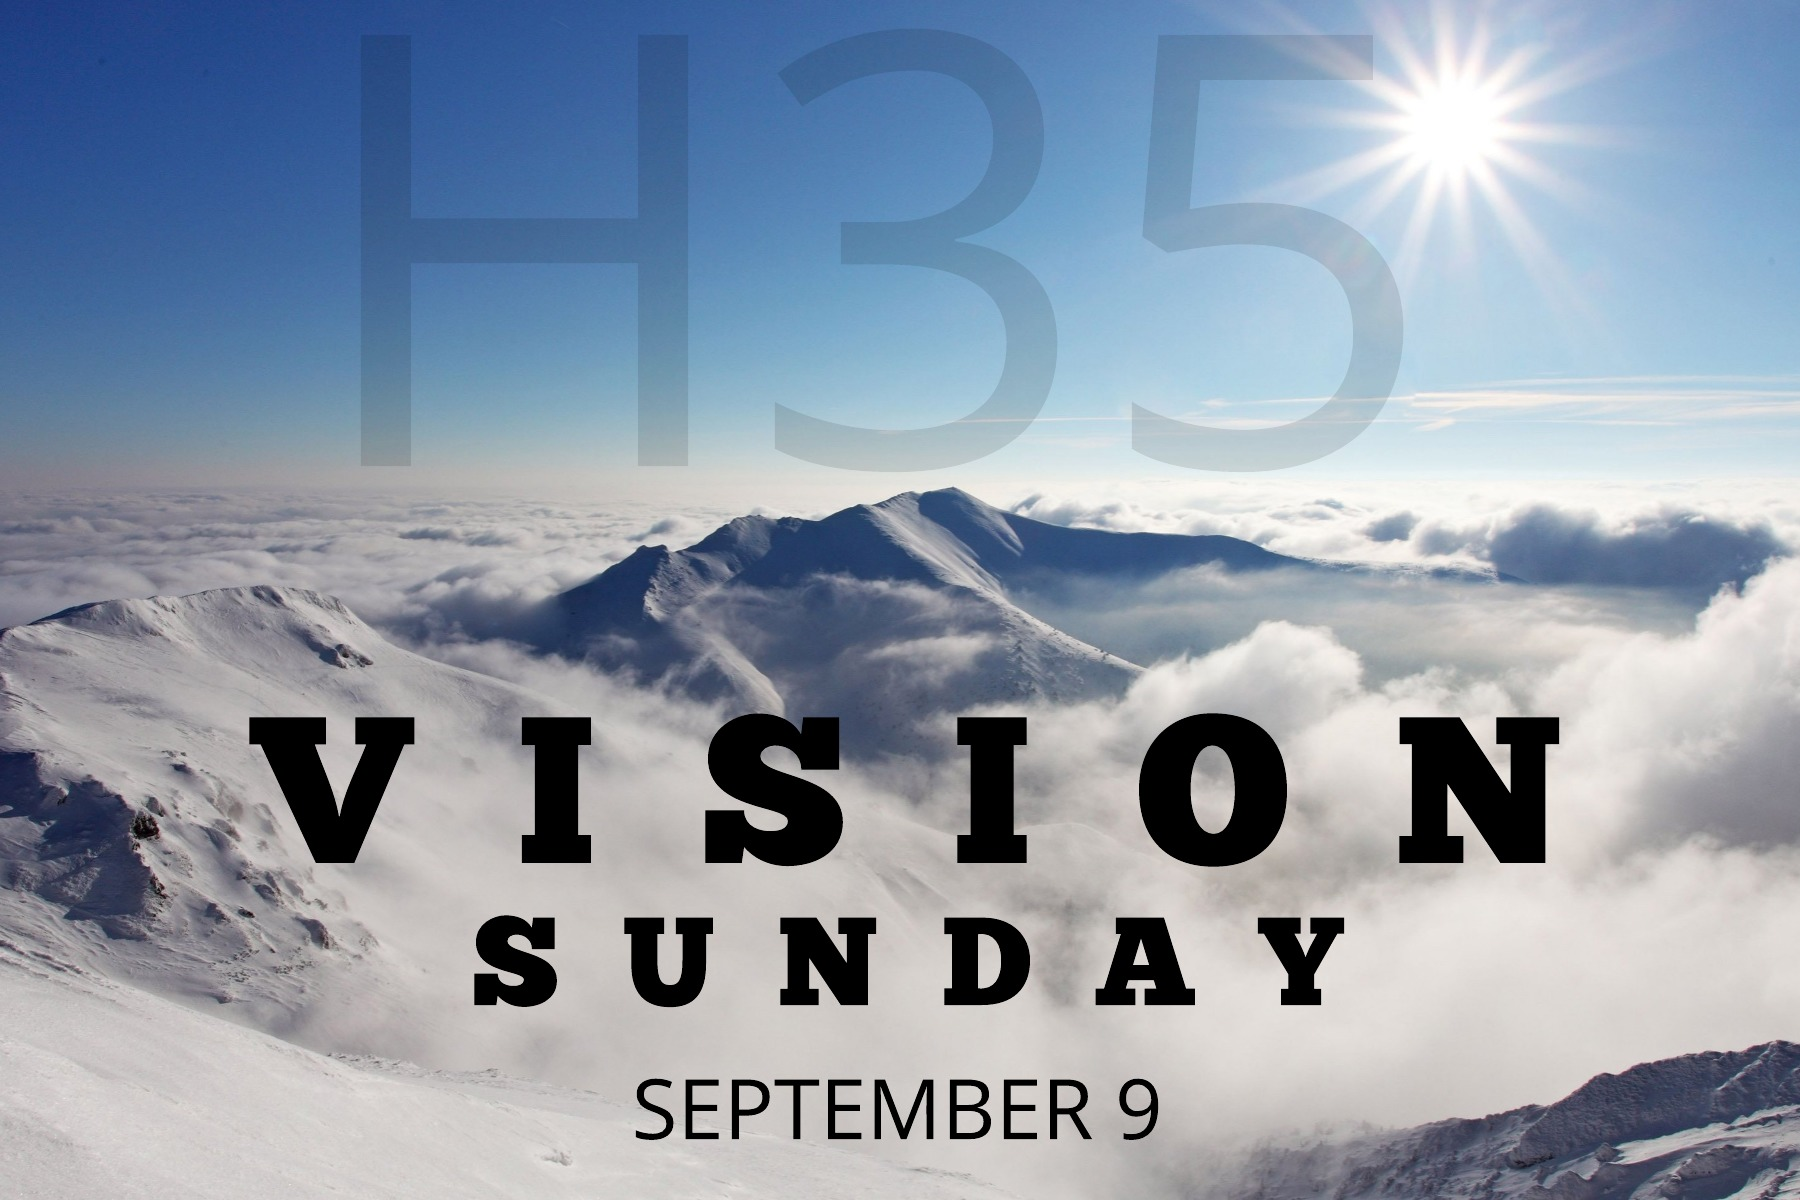 Series: Vision Sunday